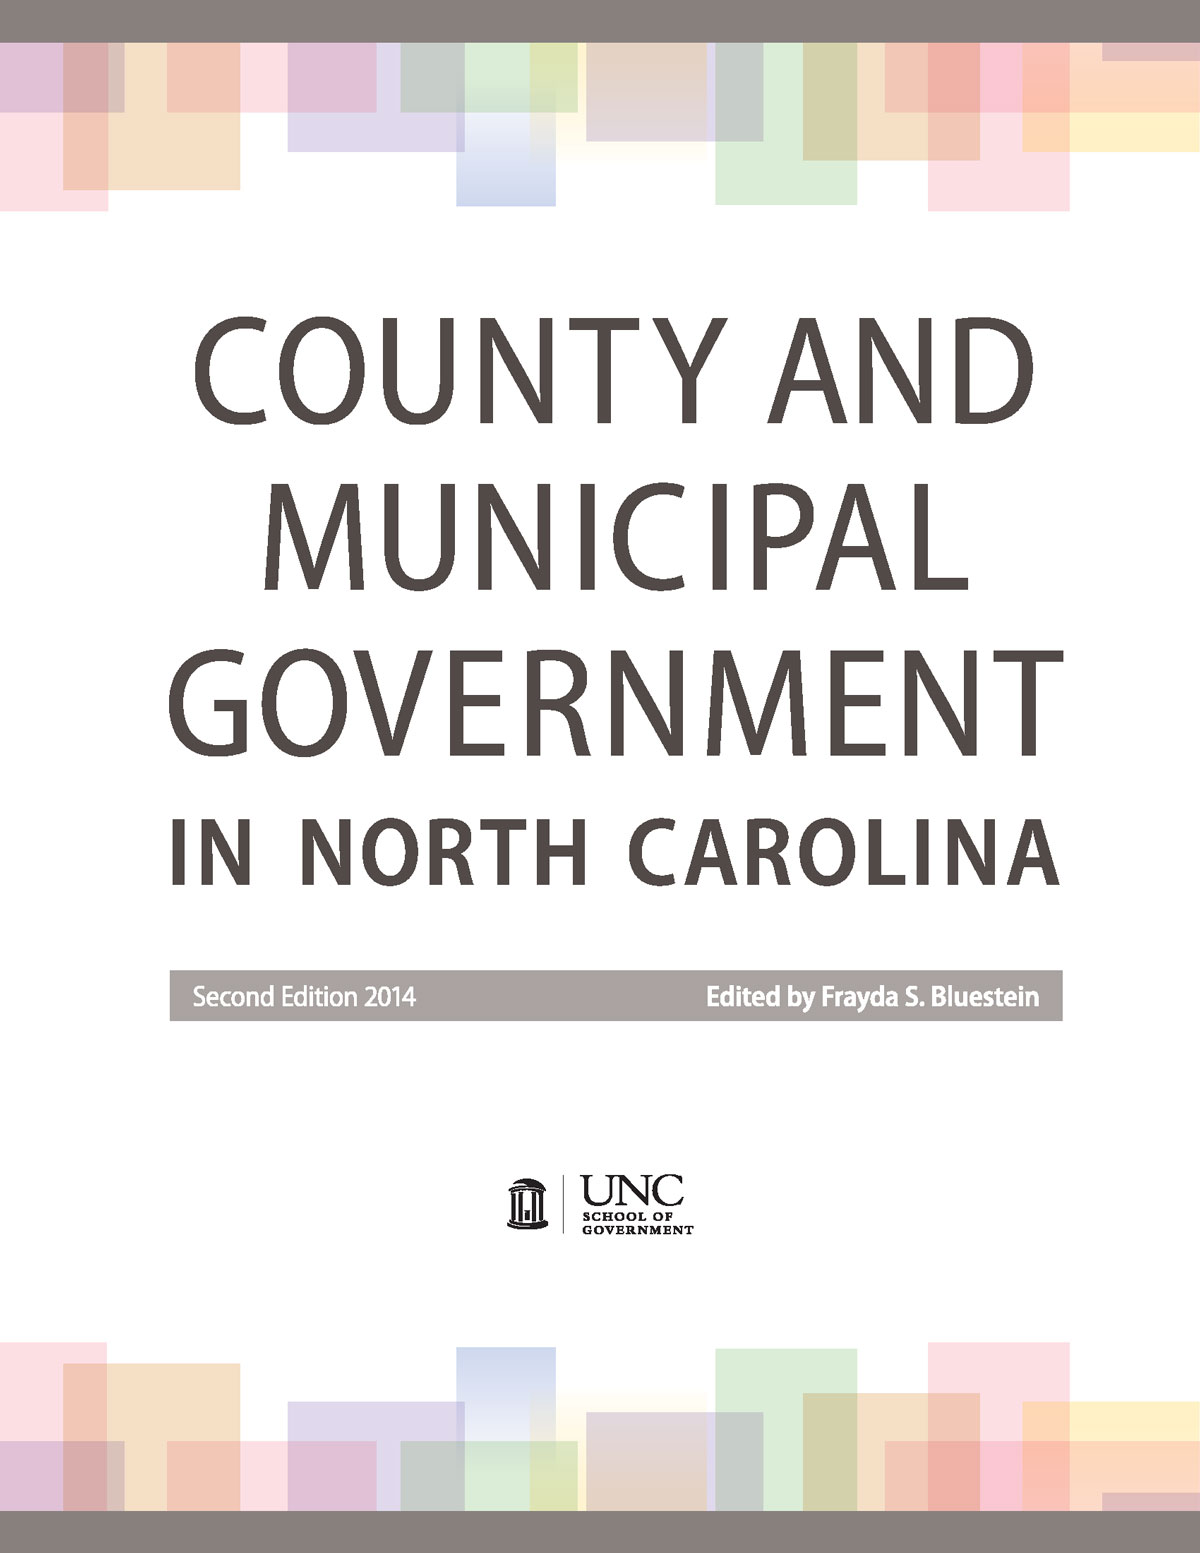 Cover image for County and Municipal Government in North Carolina, Second Edition, 2014 (PDF Format)